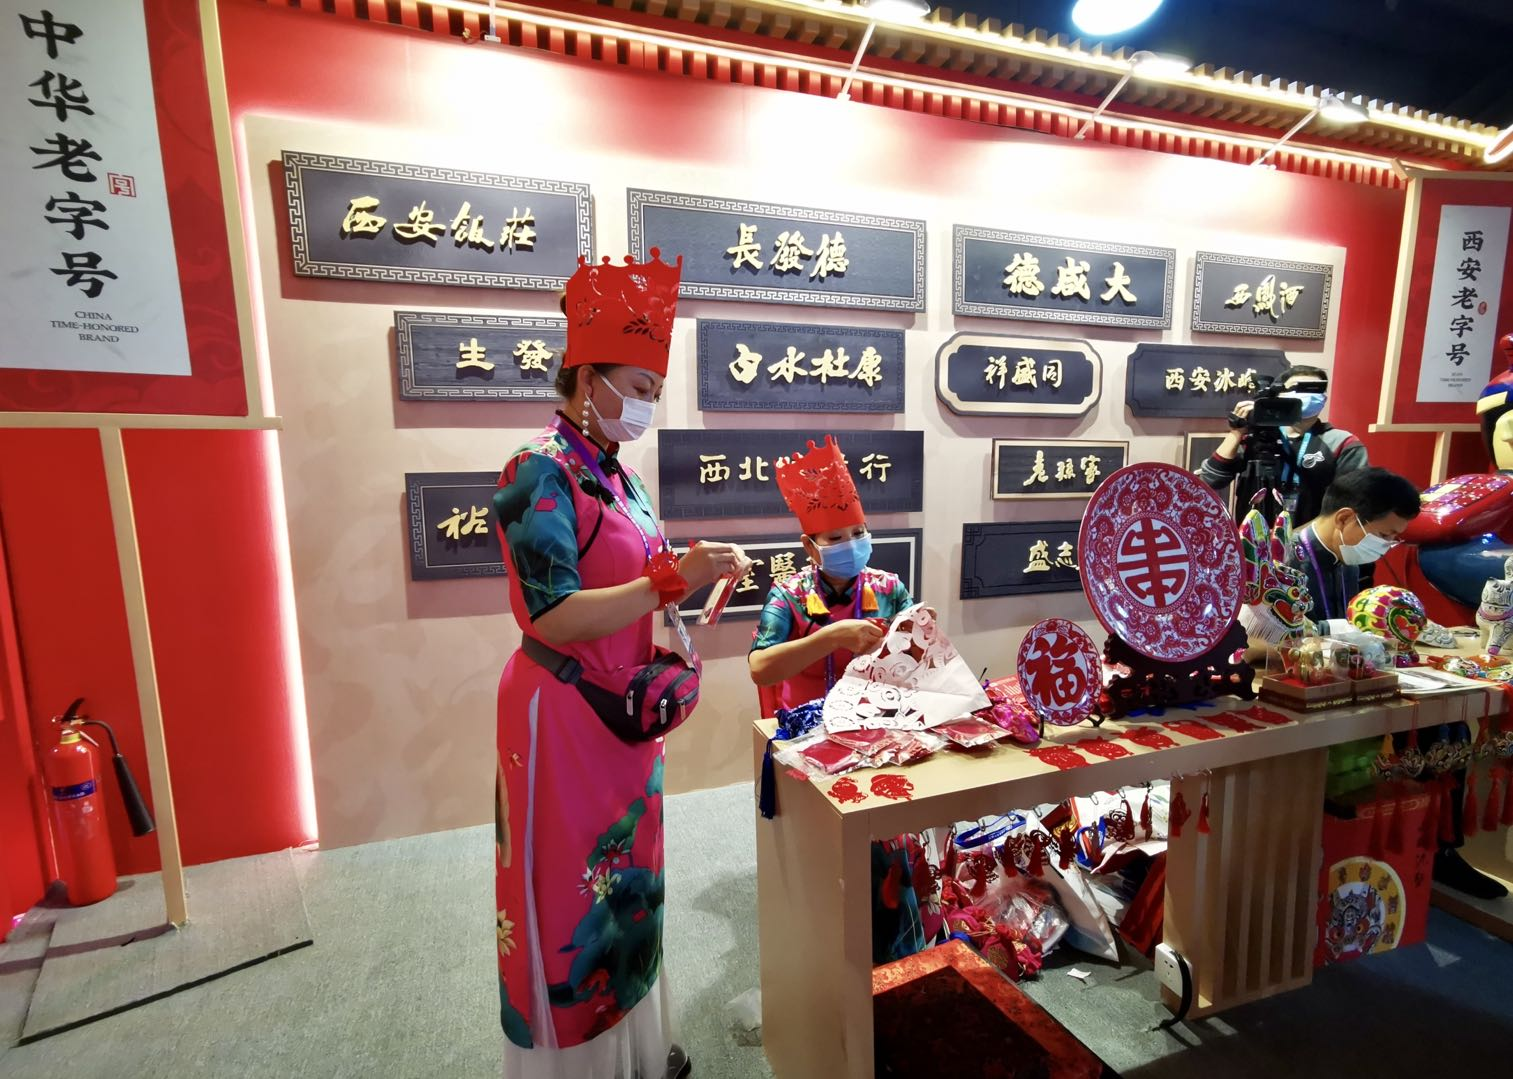 Shaanxi at the 3rd CIIE: a brand new image